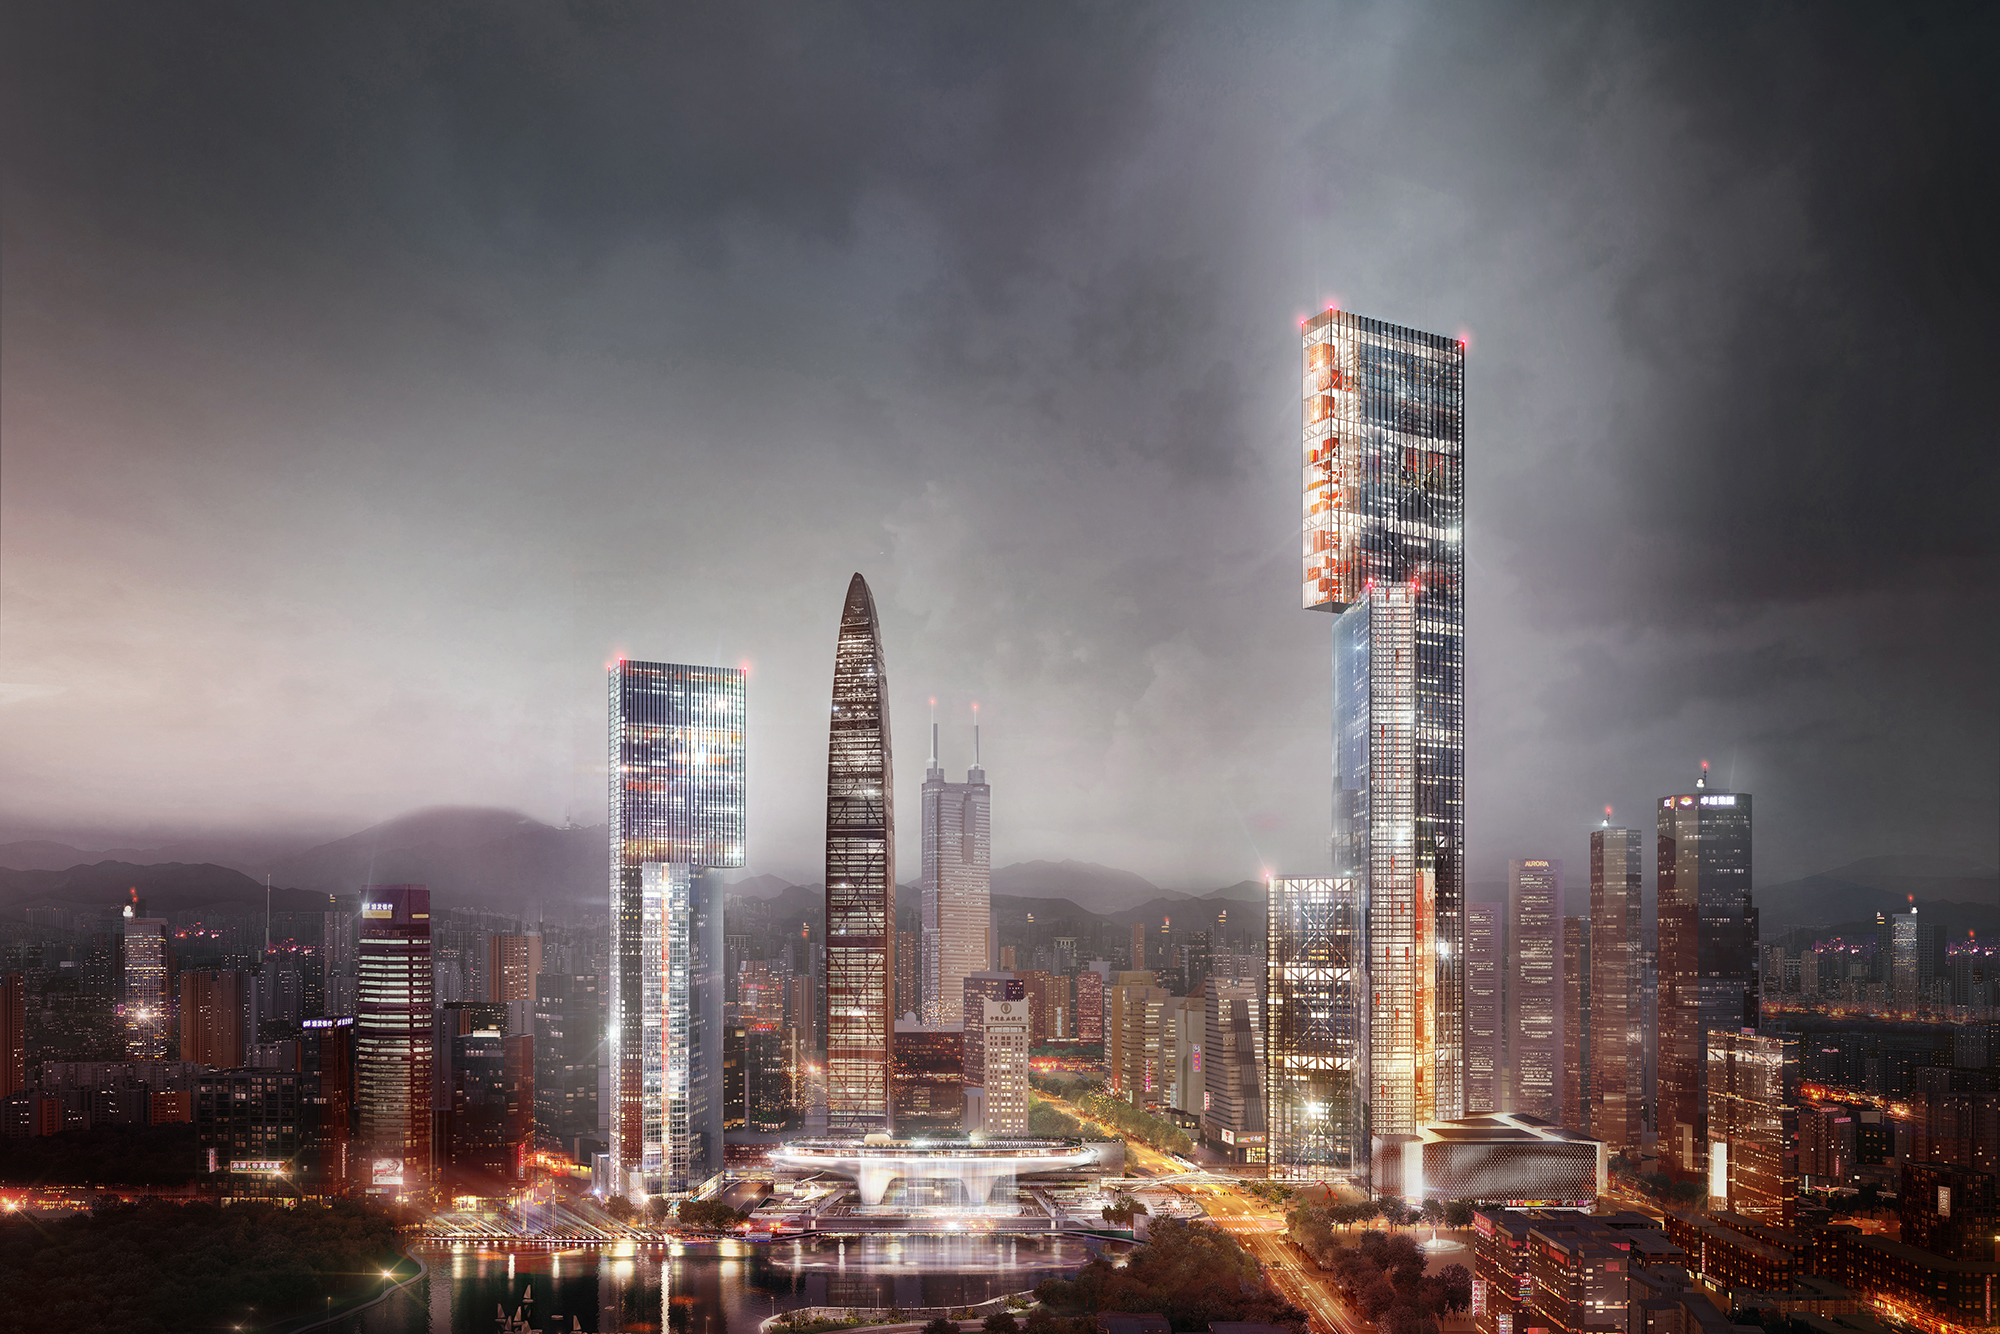 Wallpaper Killzone Shadow Fall Nexus Tower Architect Magazine Plp Architecture China